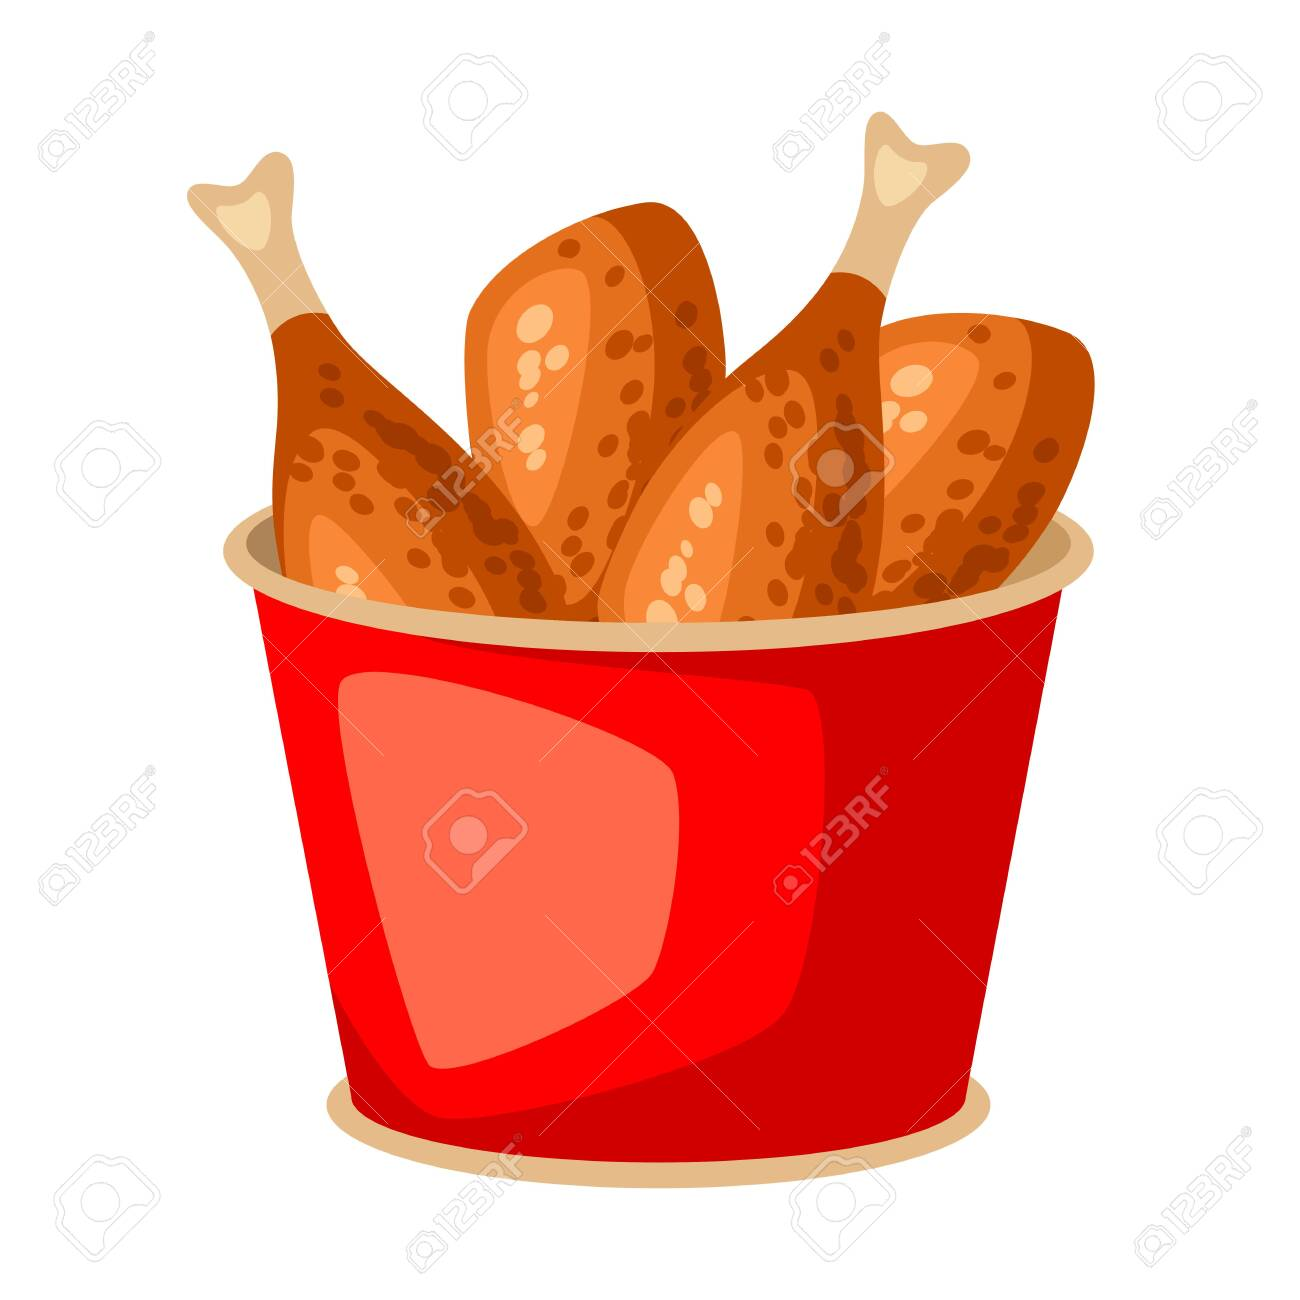 Fried Chicken In Red Bucket Fast Food Snack Icon Or Illustration Royalty Free Cliparts Vectors And Stock Illustration Image 132954035